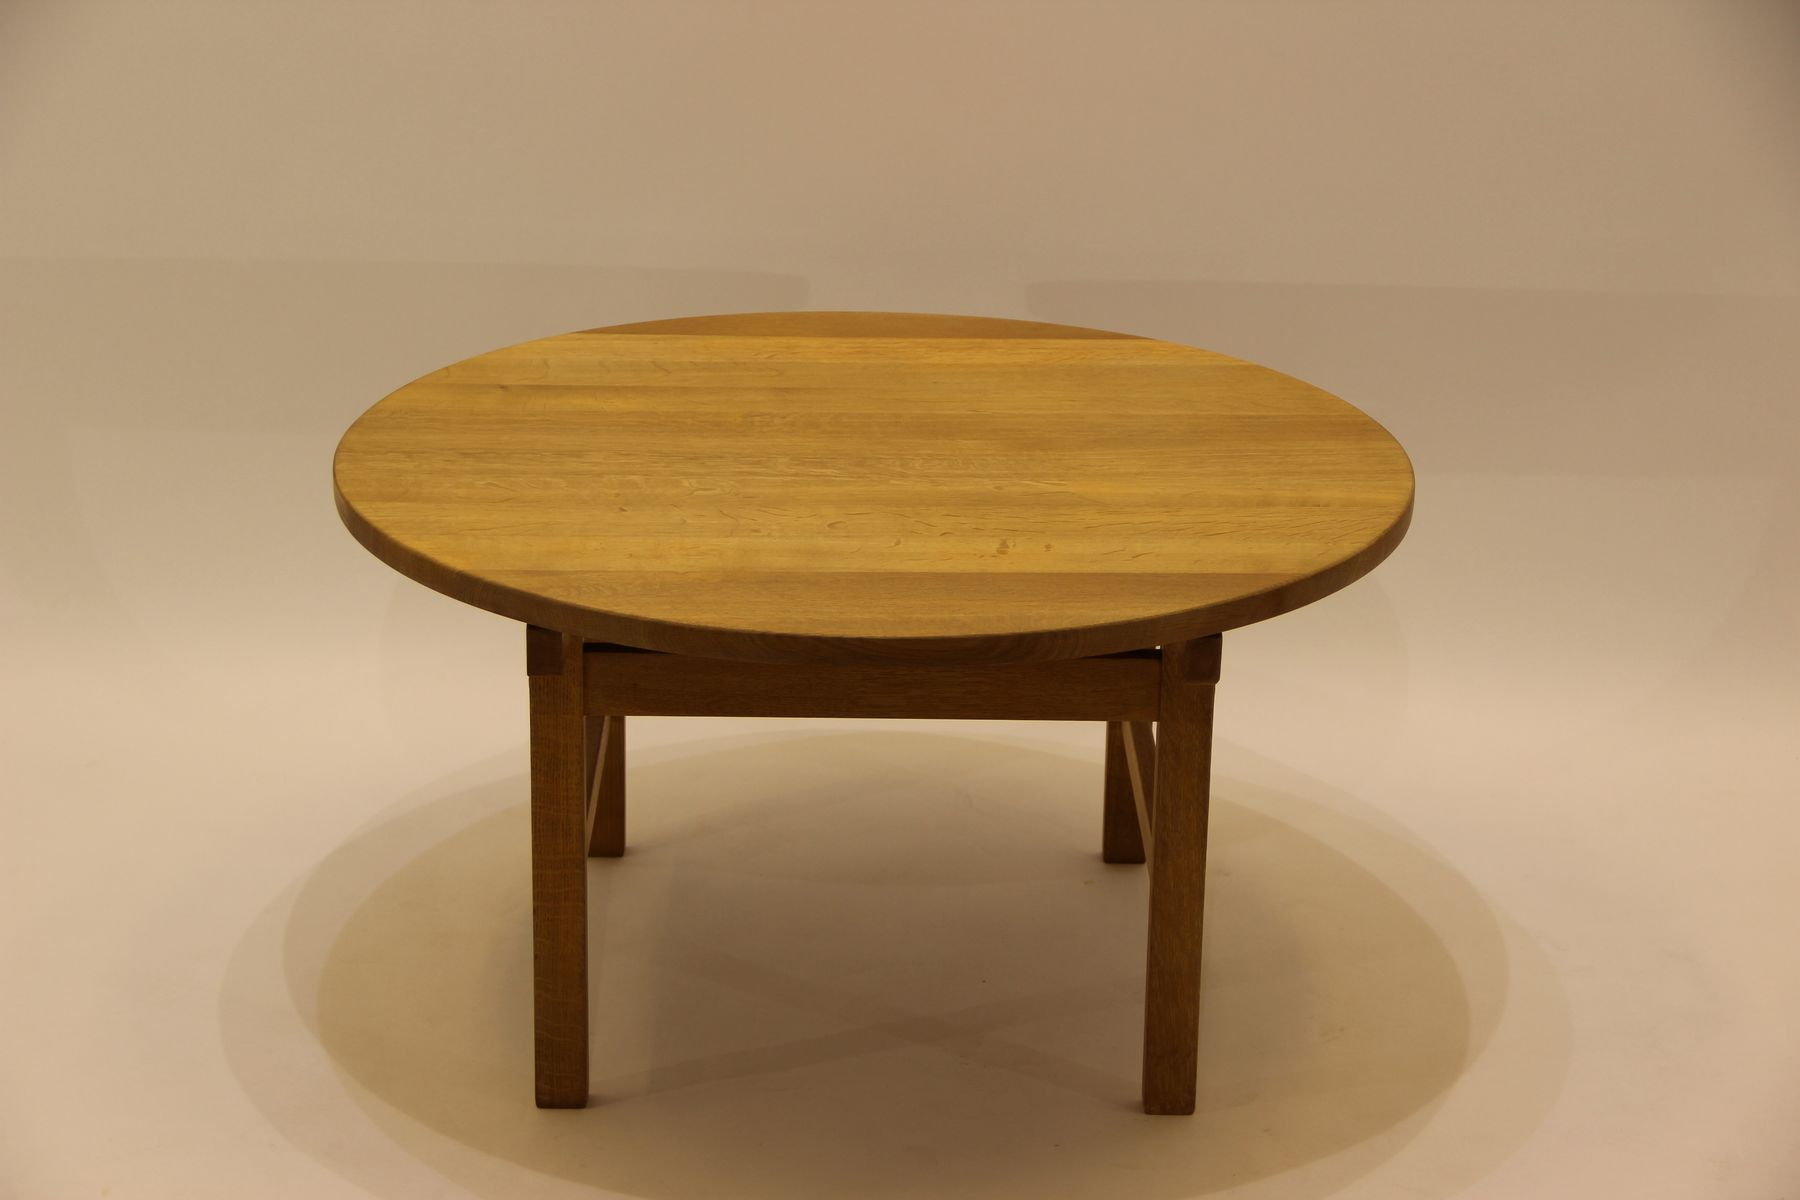 Vintage Coffee Table in Oak by Hans J Wegner for Andreas Tuck for